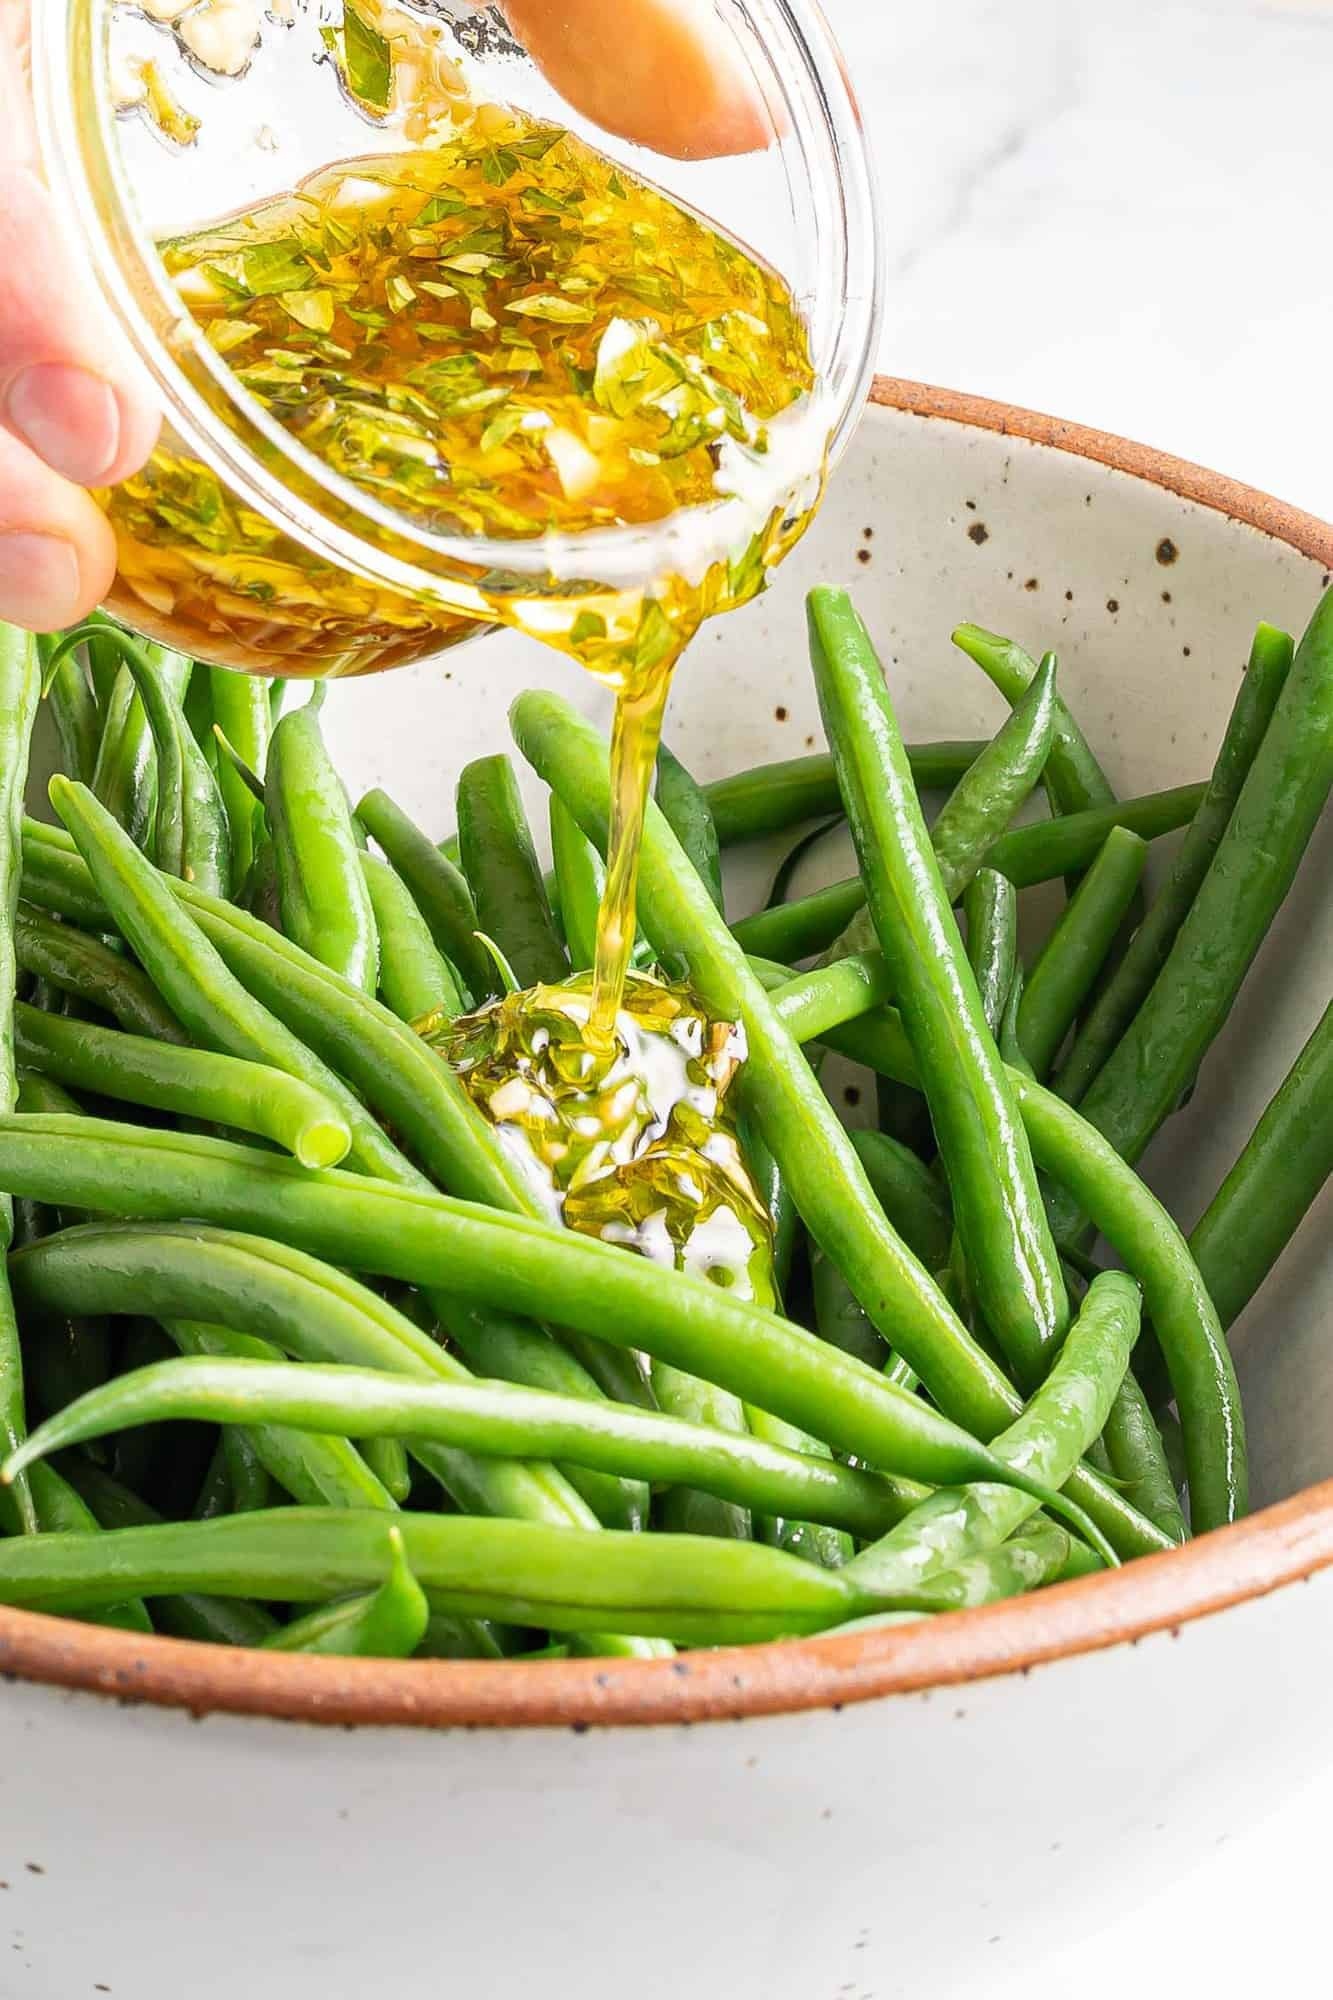 Dressing being poured on green beans.